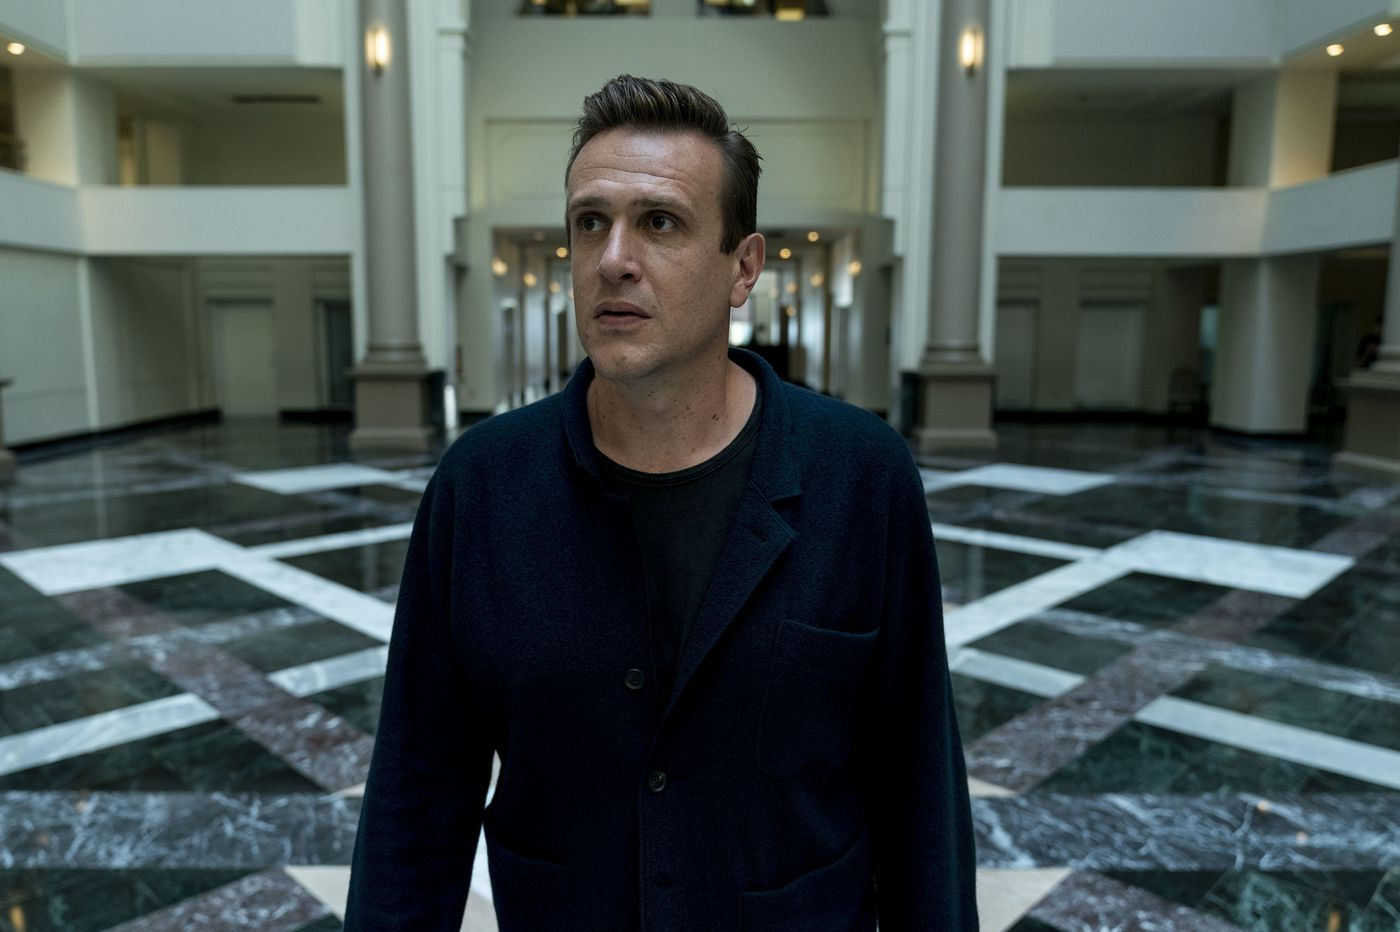 See all the Philly places featured in the trailer for Jason Segel's new show